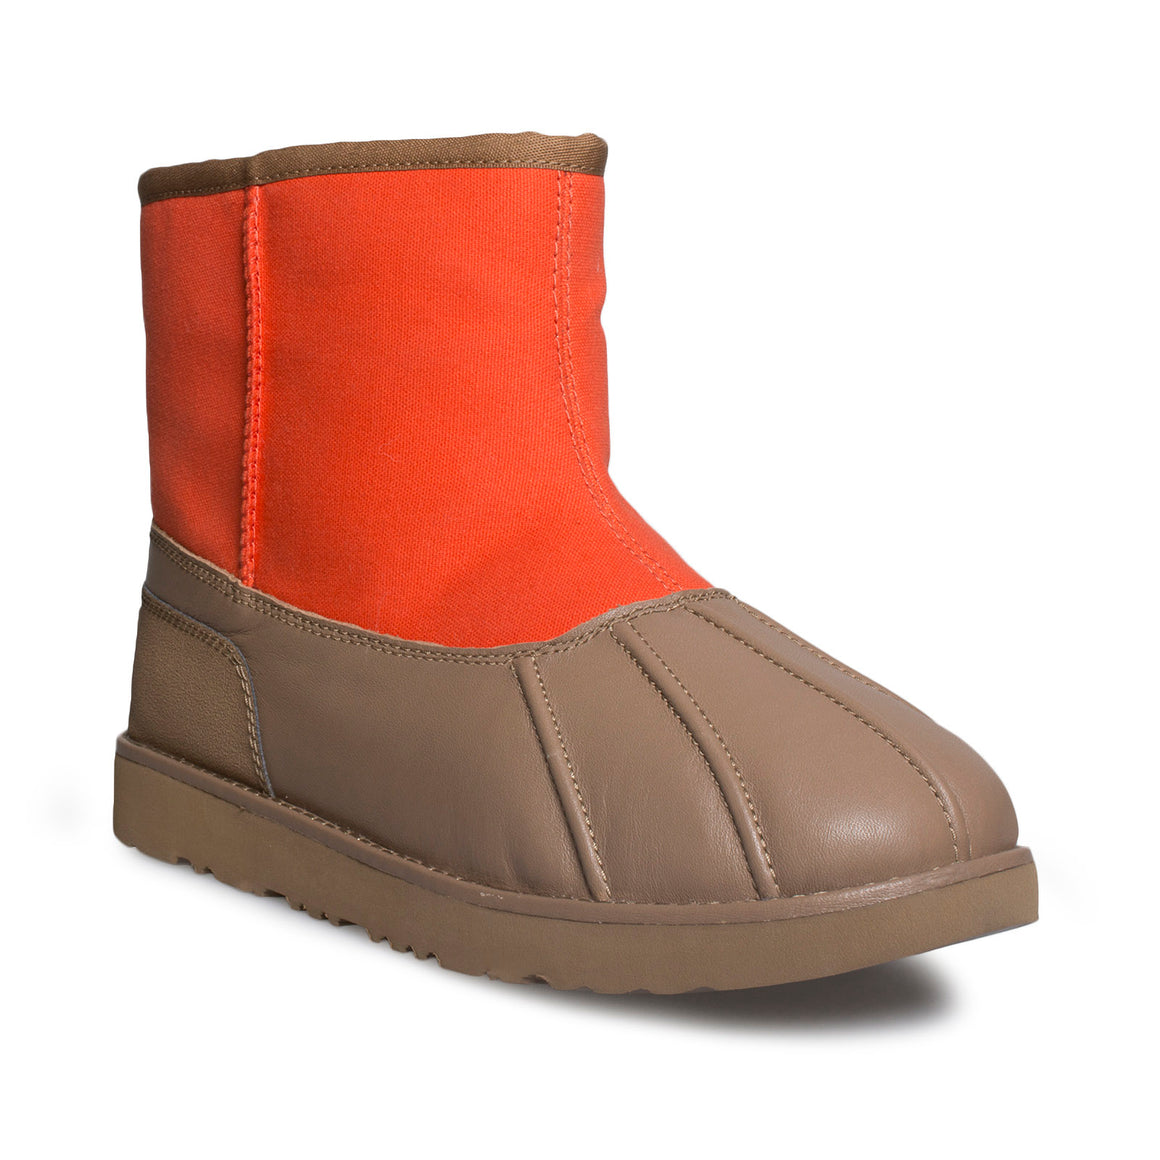 UGG Philip Lim Classic Mini Duck Orange Boots - Men's